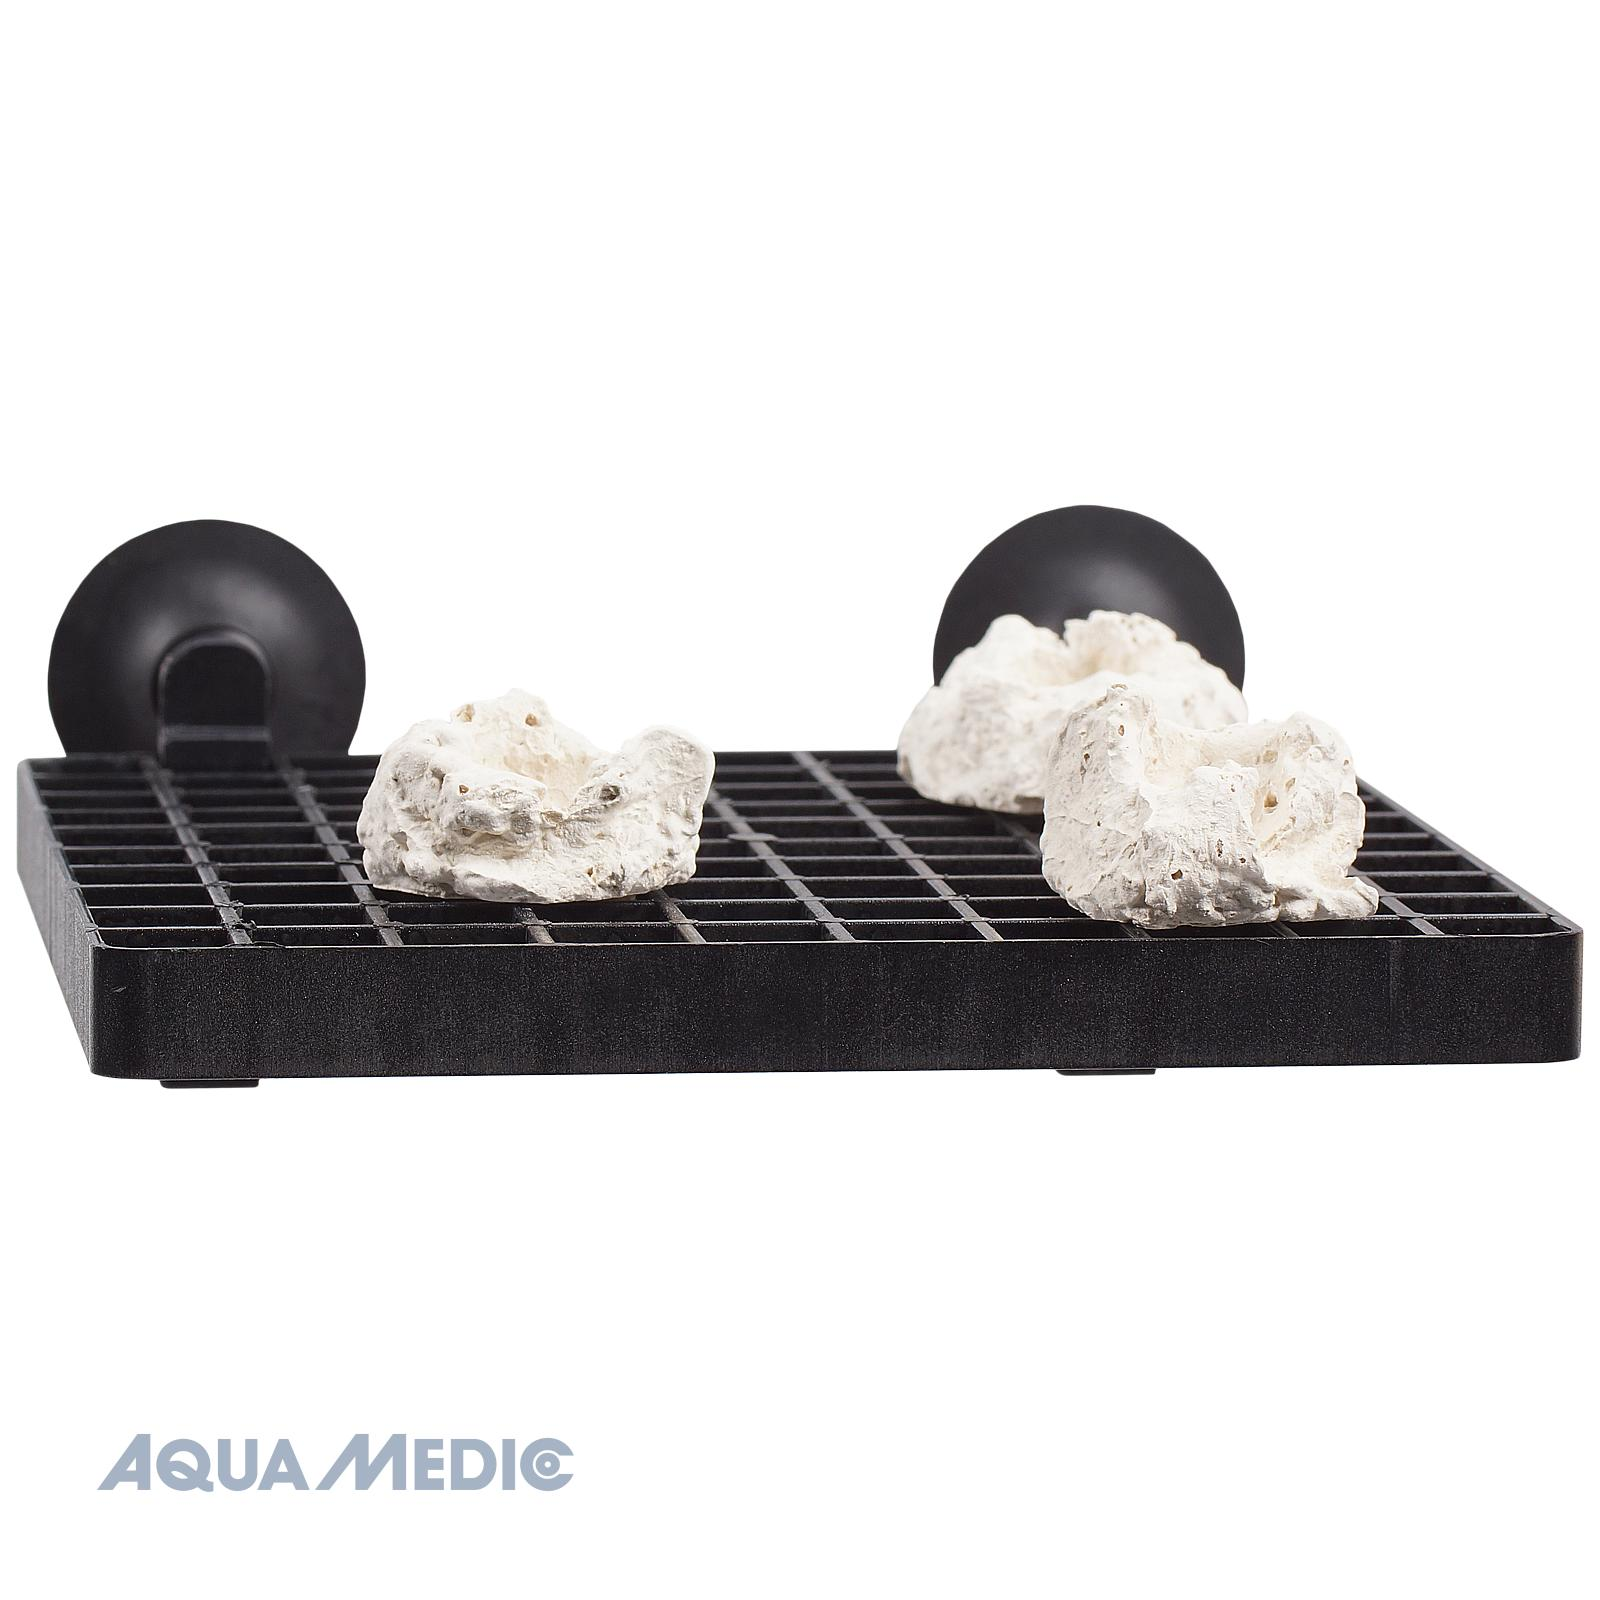 Aquamedic Frag Board